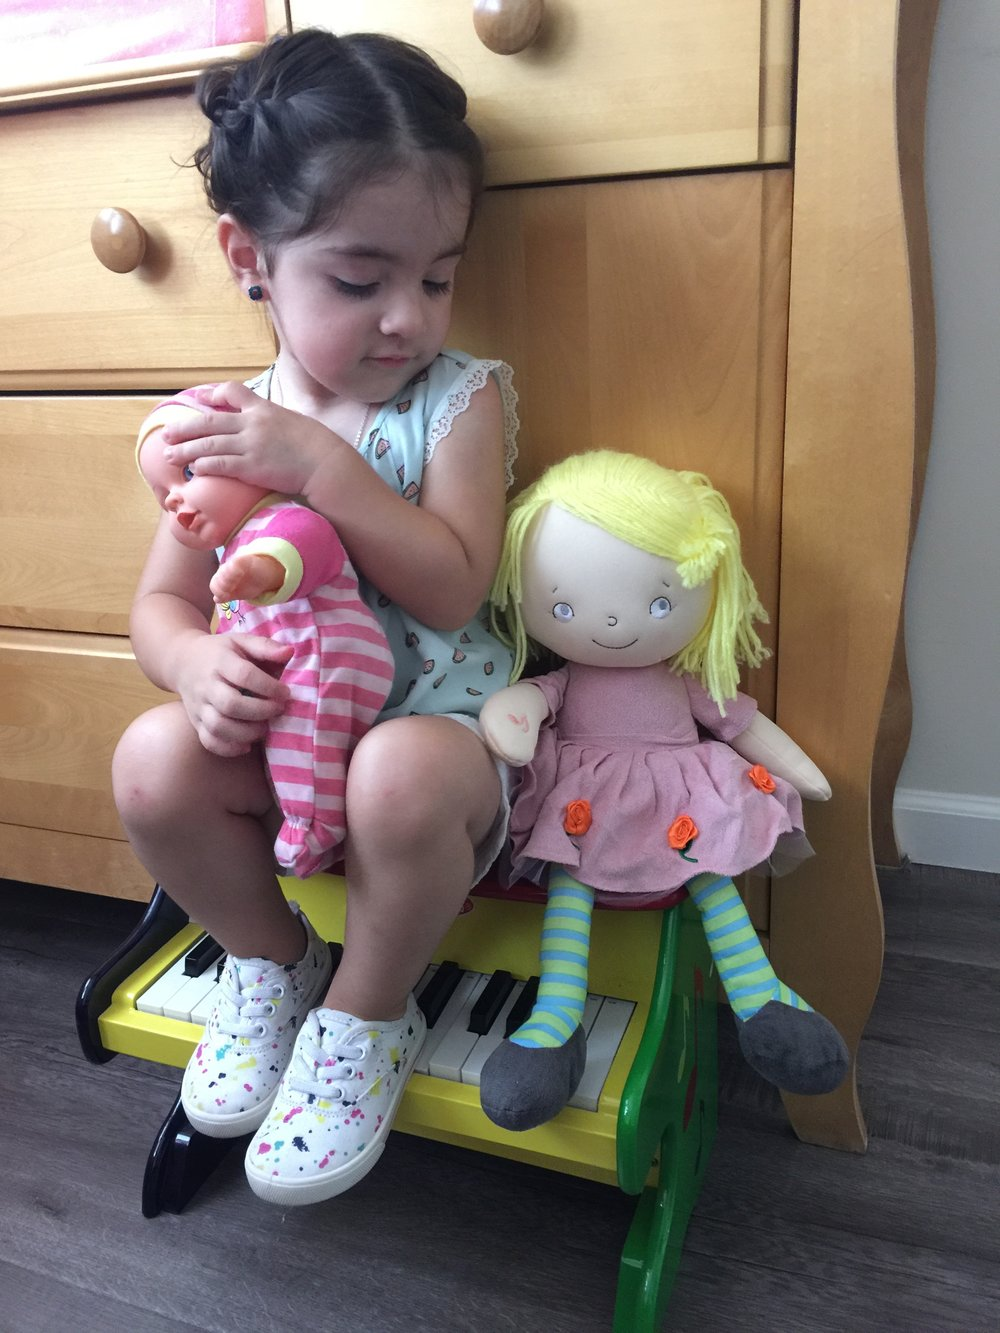 Playing with one of her many dolls